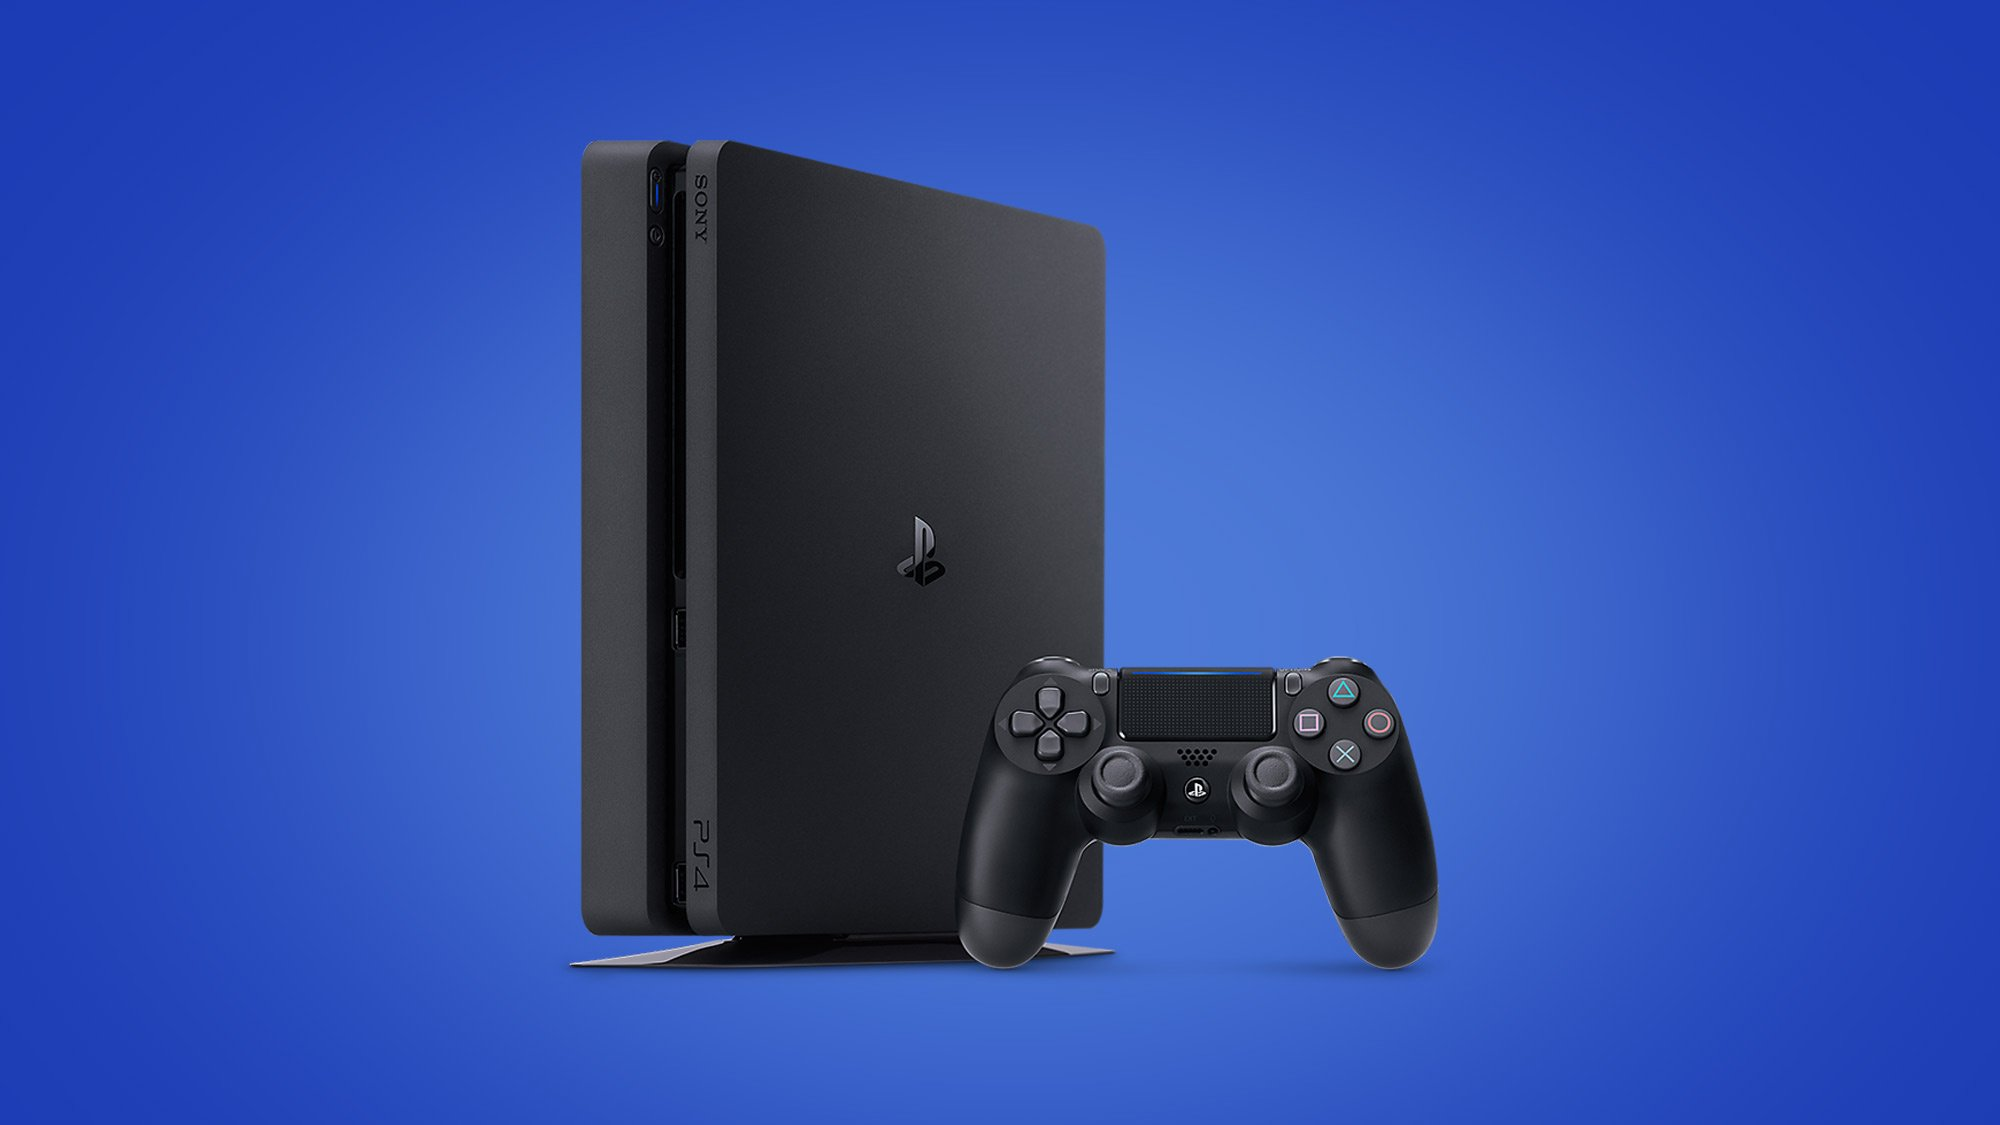 Ps4 Christmas Deal 2021 Is It Worth Buying A Ps4 In 2021 Guide Push Square